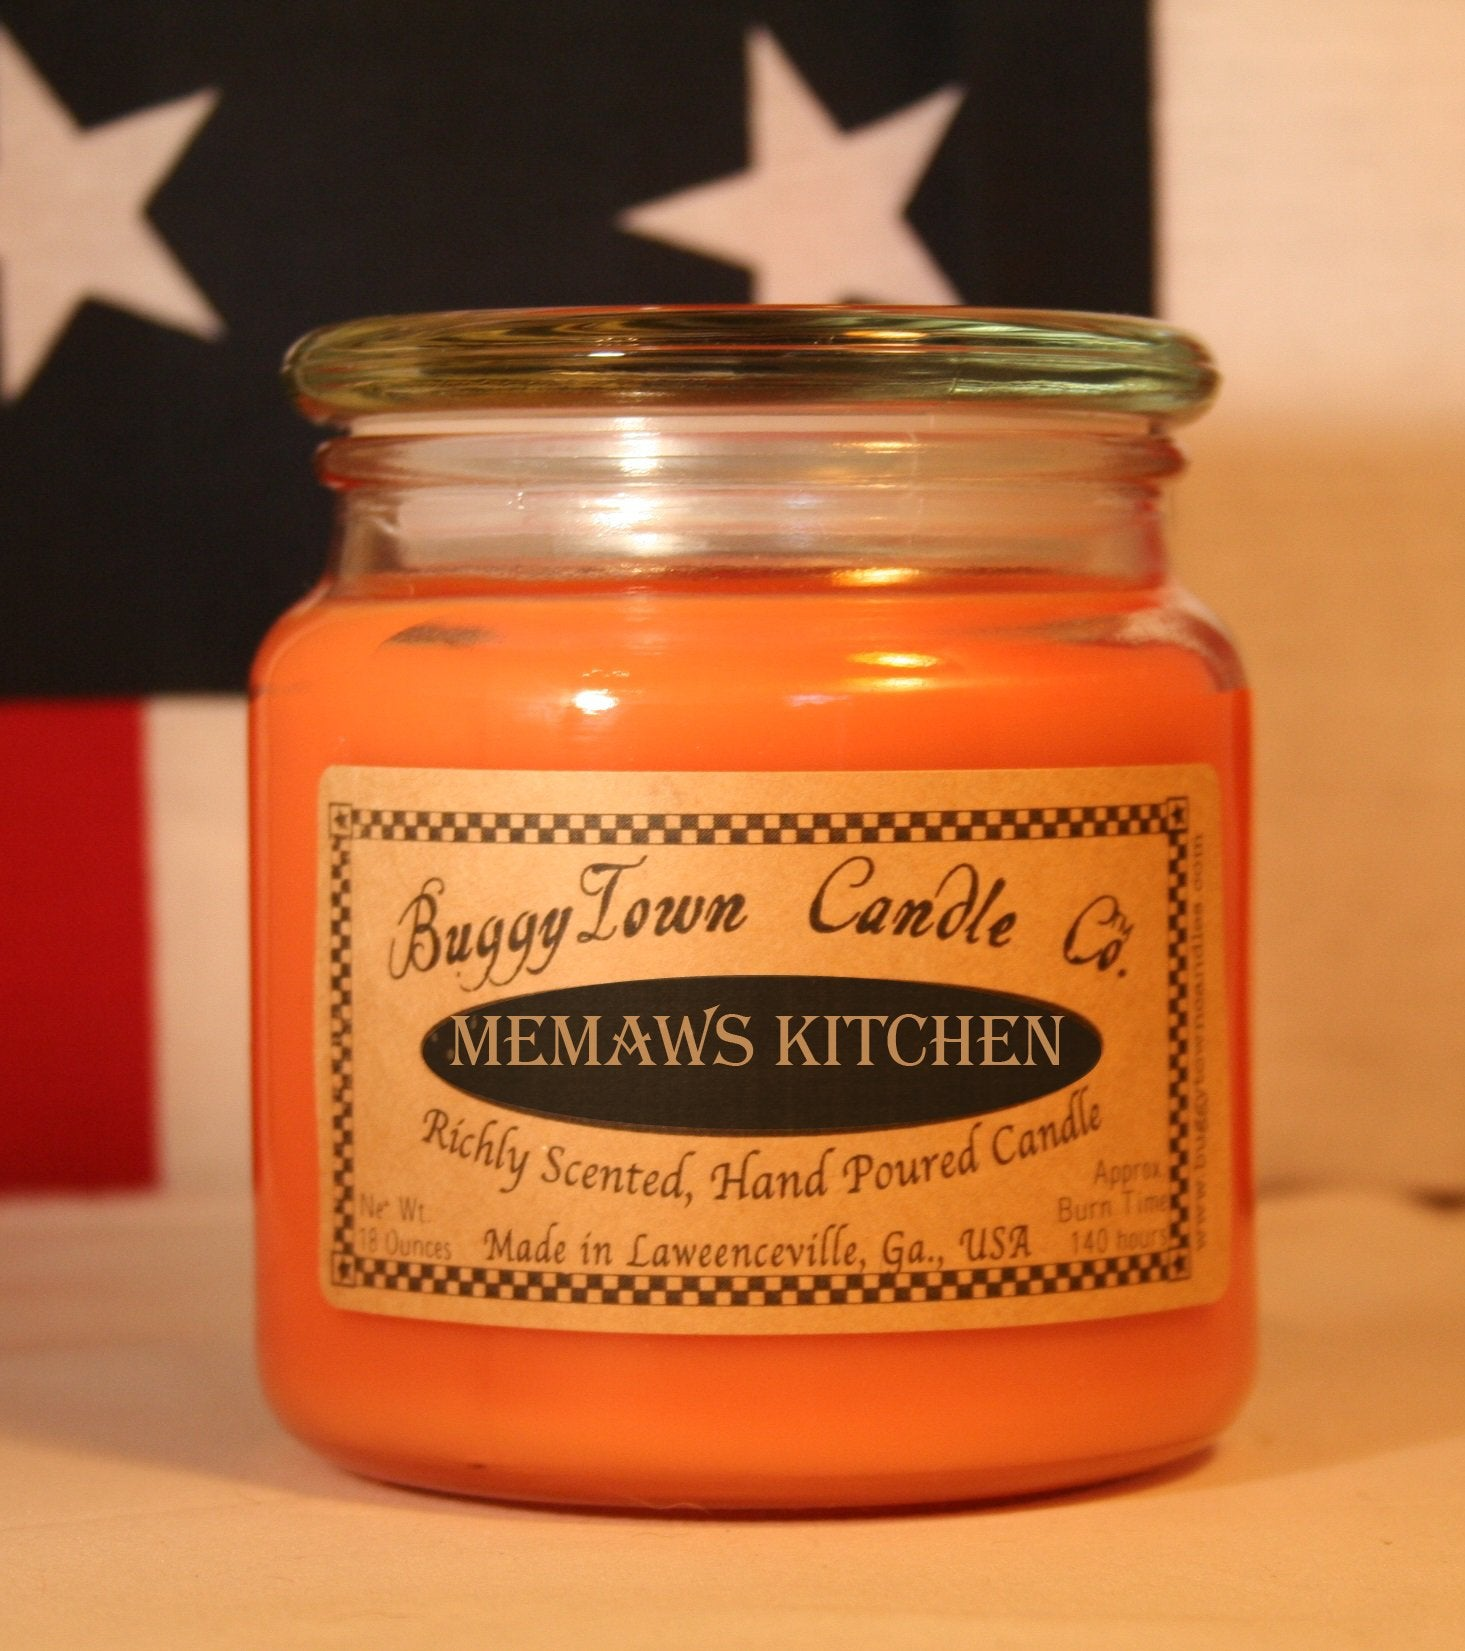 Memaw's Kitchen Candles